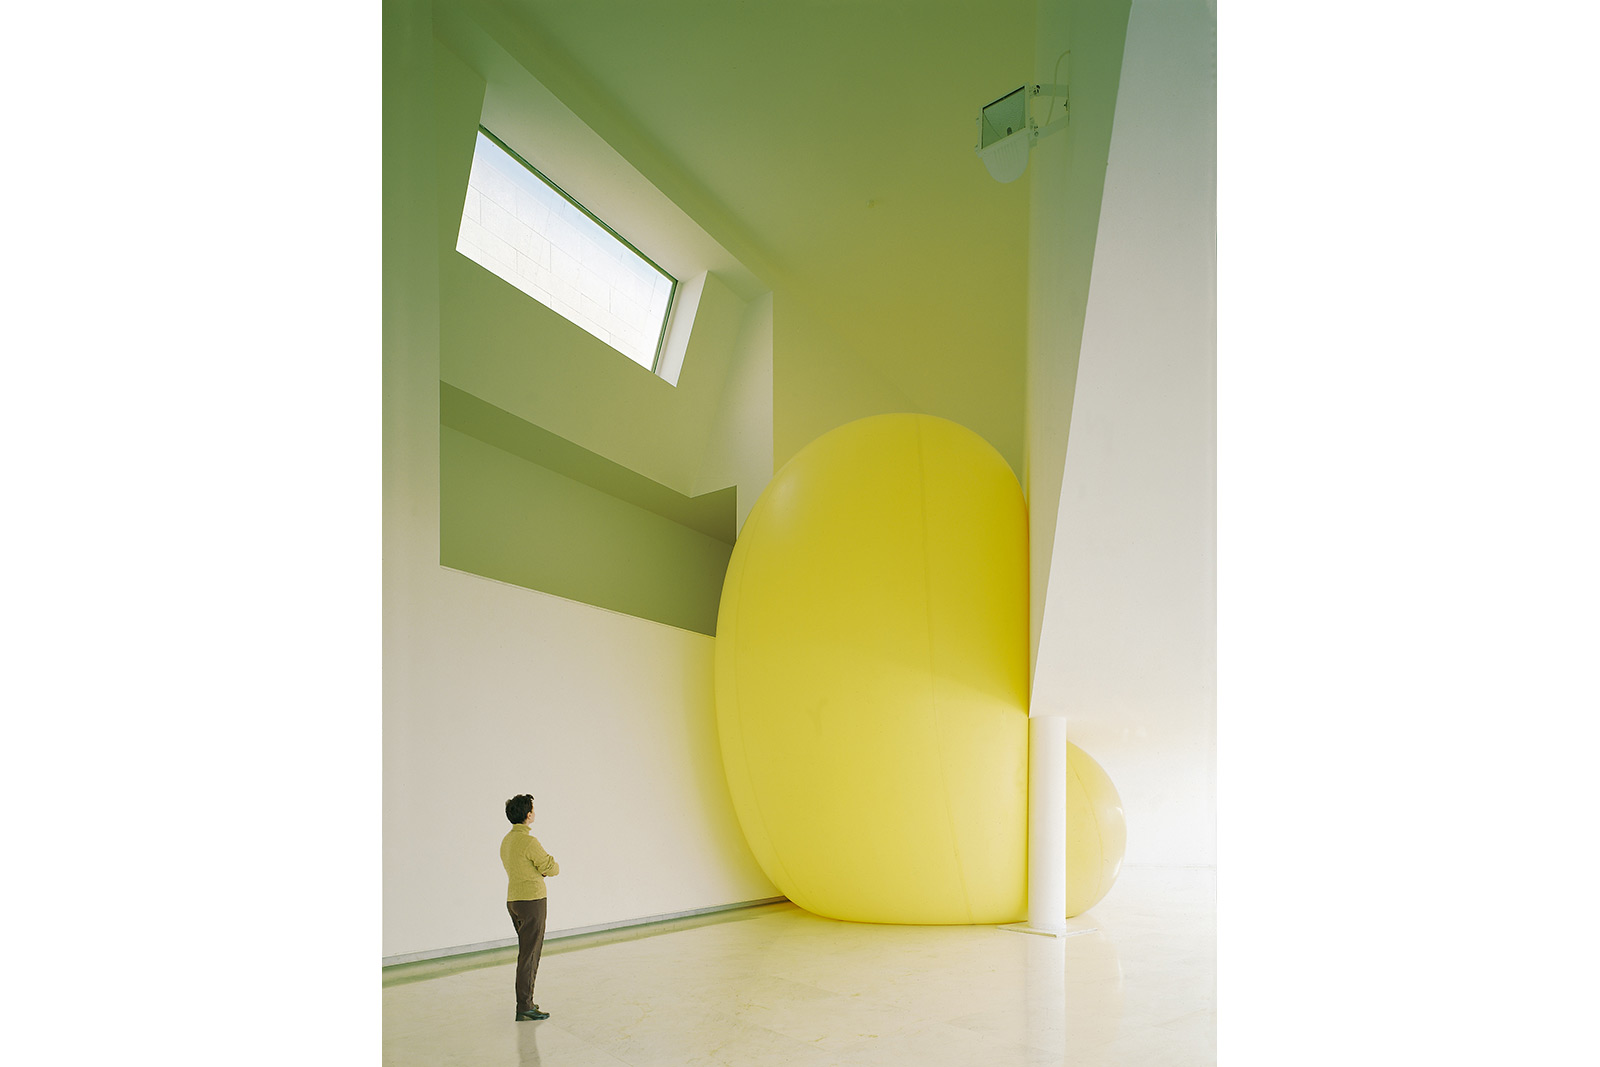 balloon and architecture, 10 meter high airballoon in museum